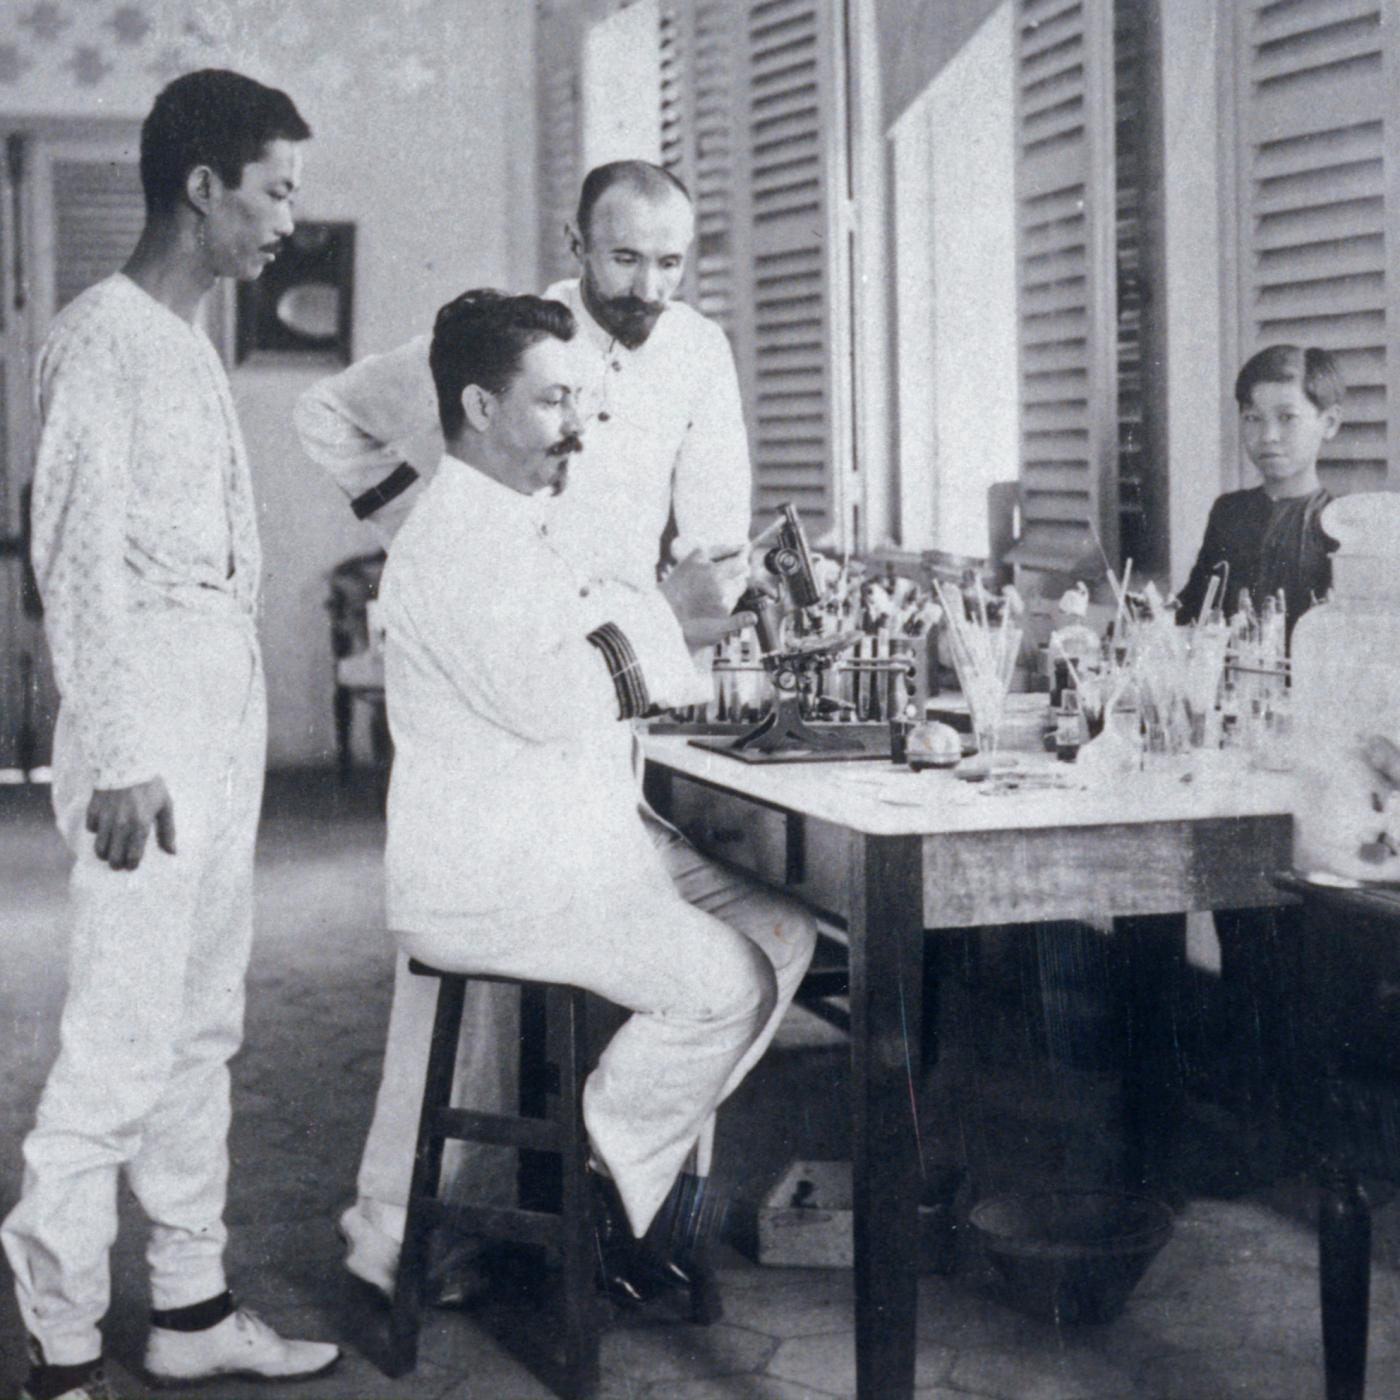 The Institut Pasteur has demonstrated its international vocation since its very creation